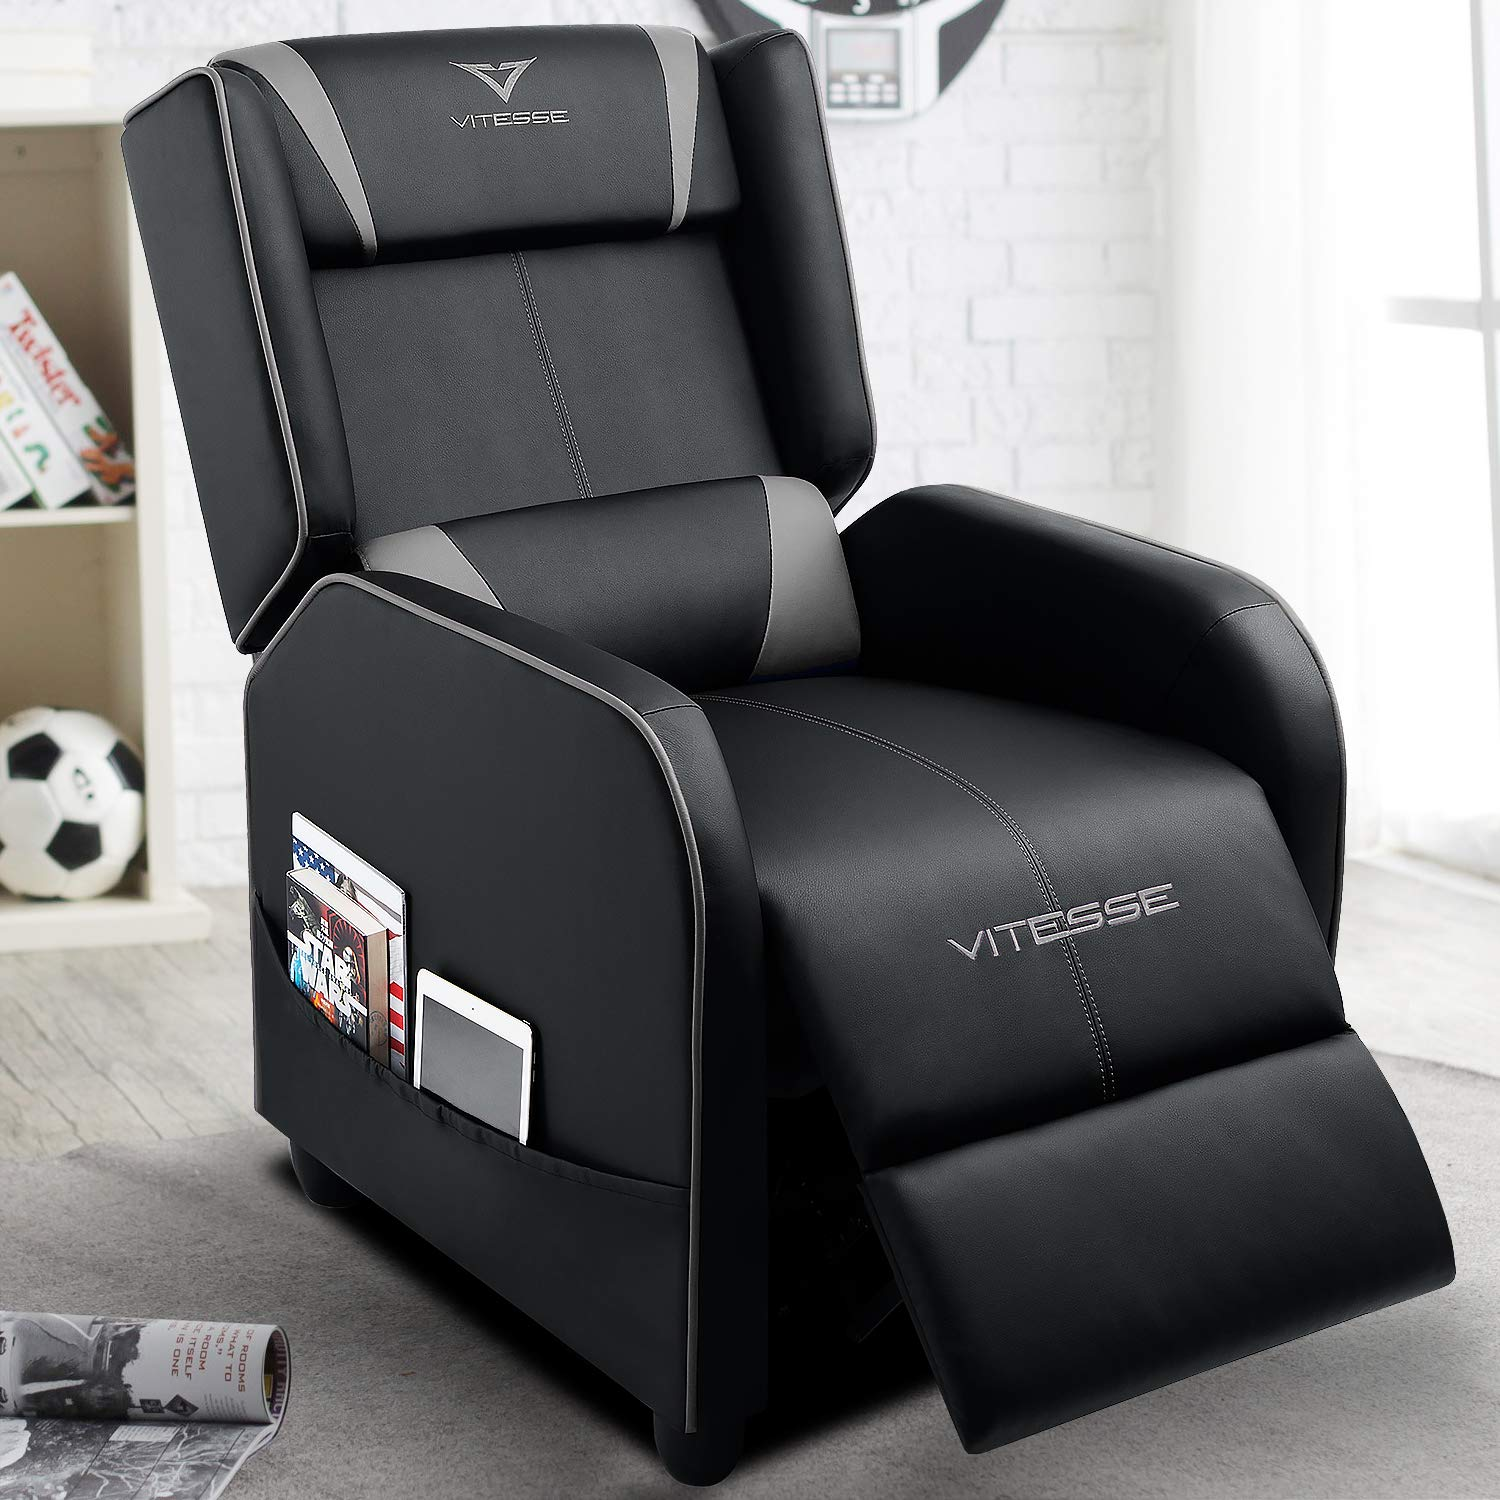 Recliner Leather Recliners Ergonomic Comfortable